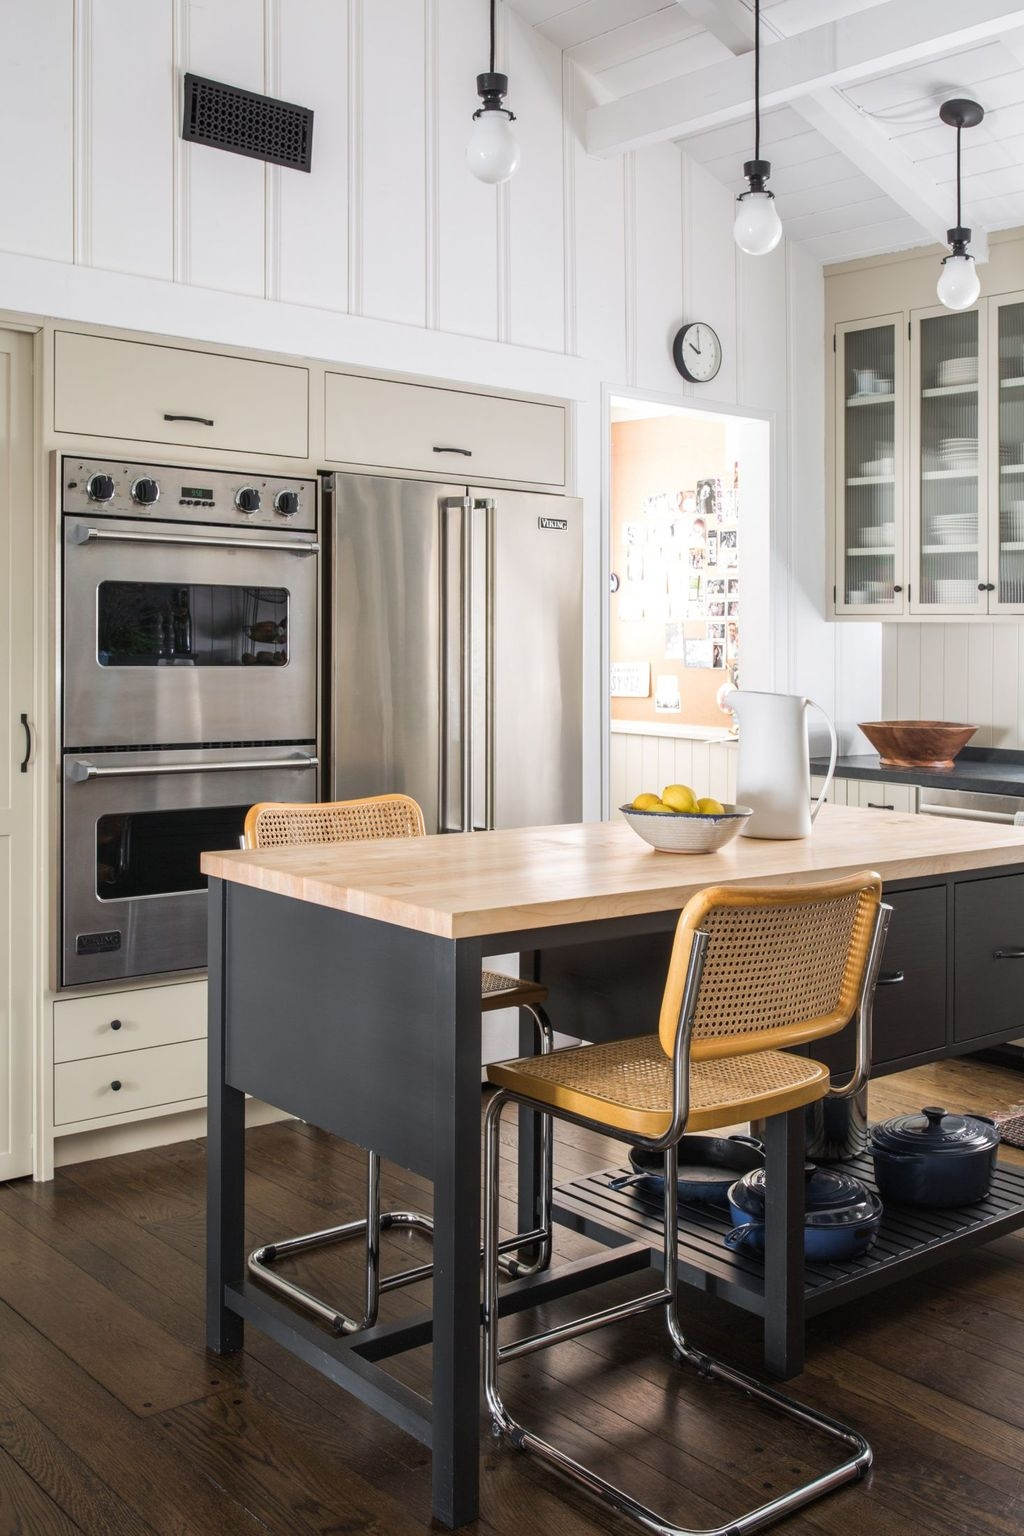 Relaxing Midcentury Decorating Ideas For Kitchen28